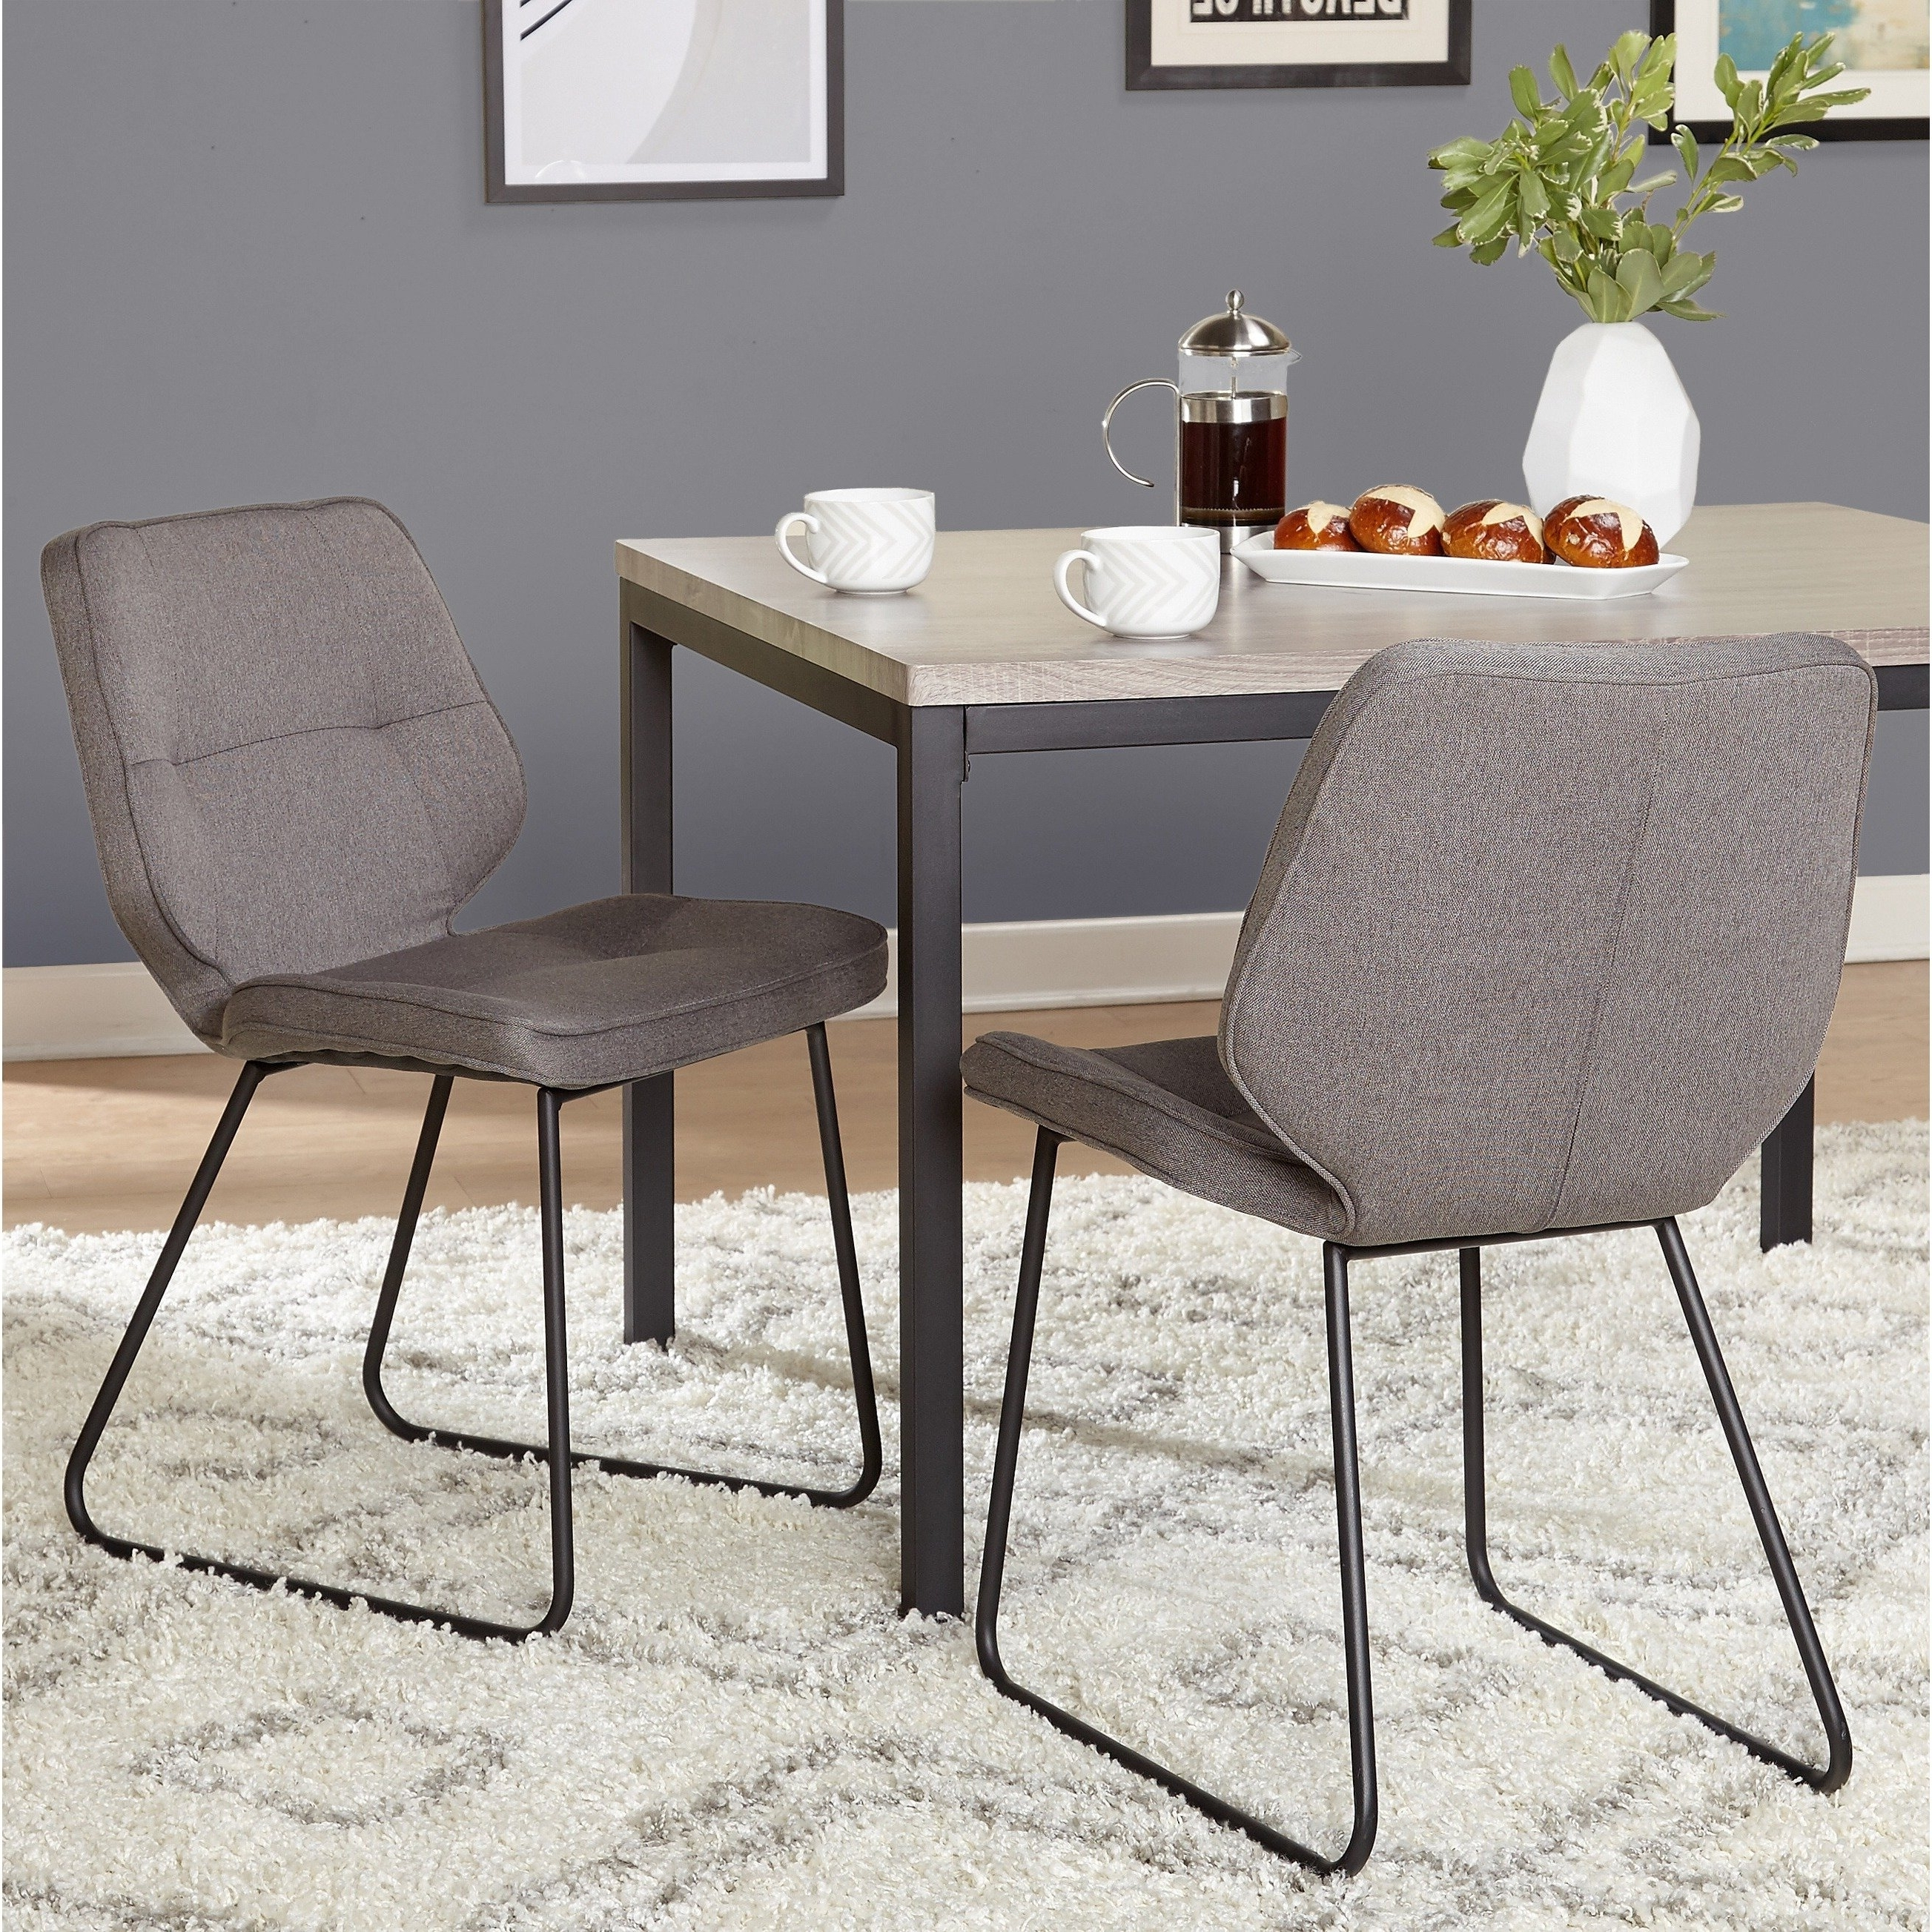 Most Recently Released Shop Simple Living Kaden Chair (Set Of 2) – Free Shipping Today Inside Caden 7 Piece Dining Sets With Upholstered Side Chair (View 11 of 25)